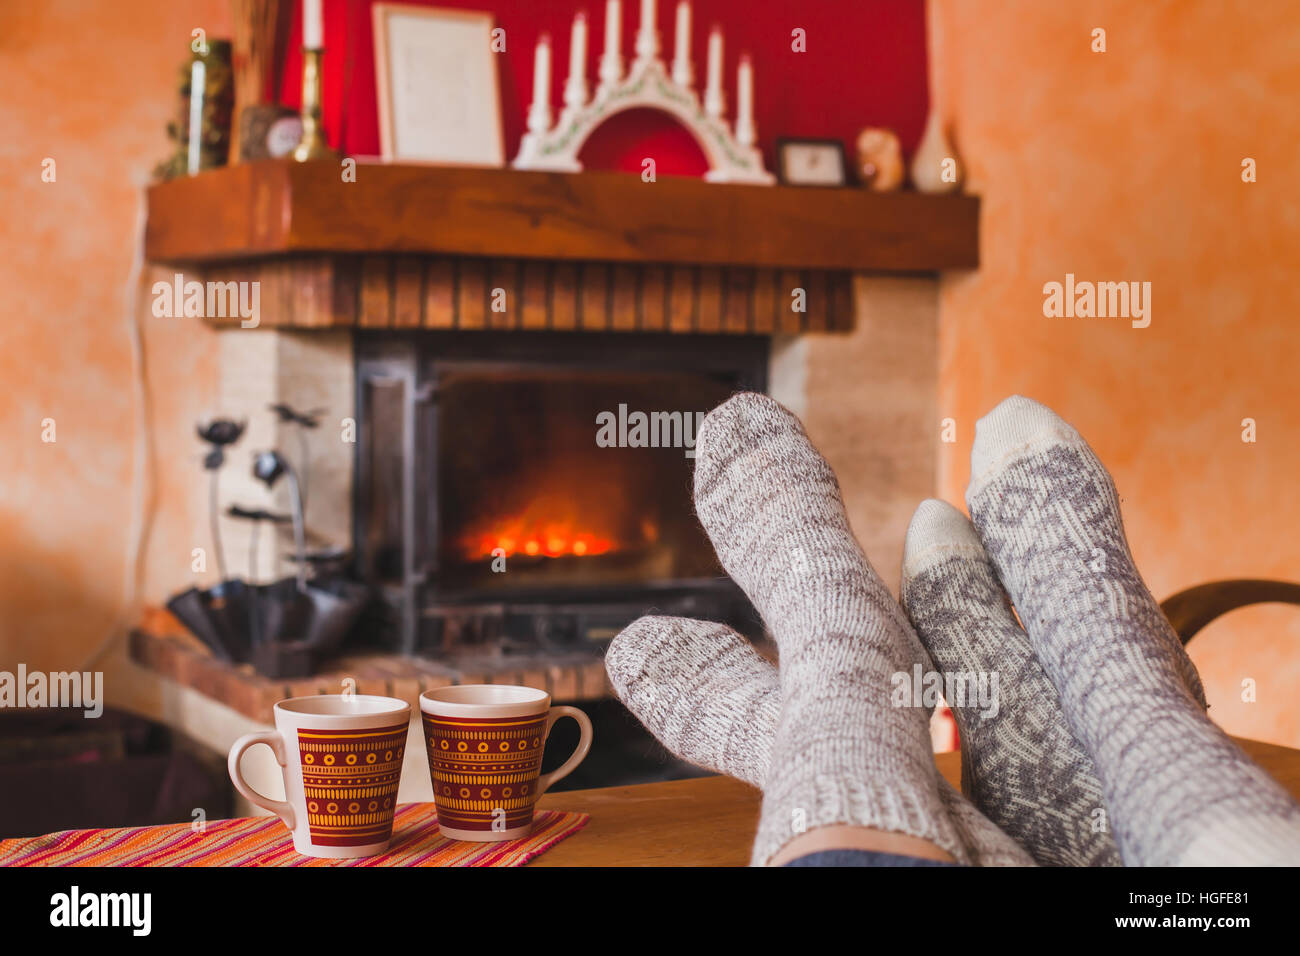 cozy family evening at home near fireplace in winter feet of